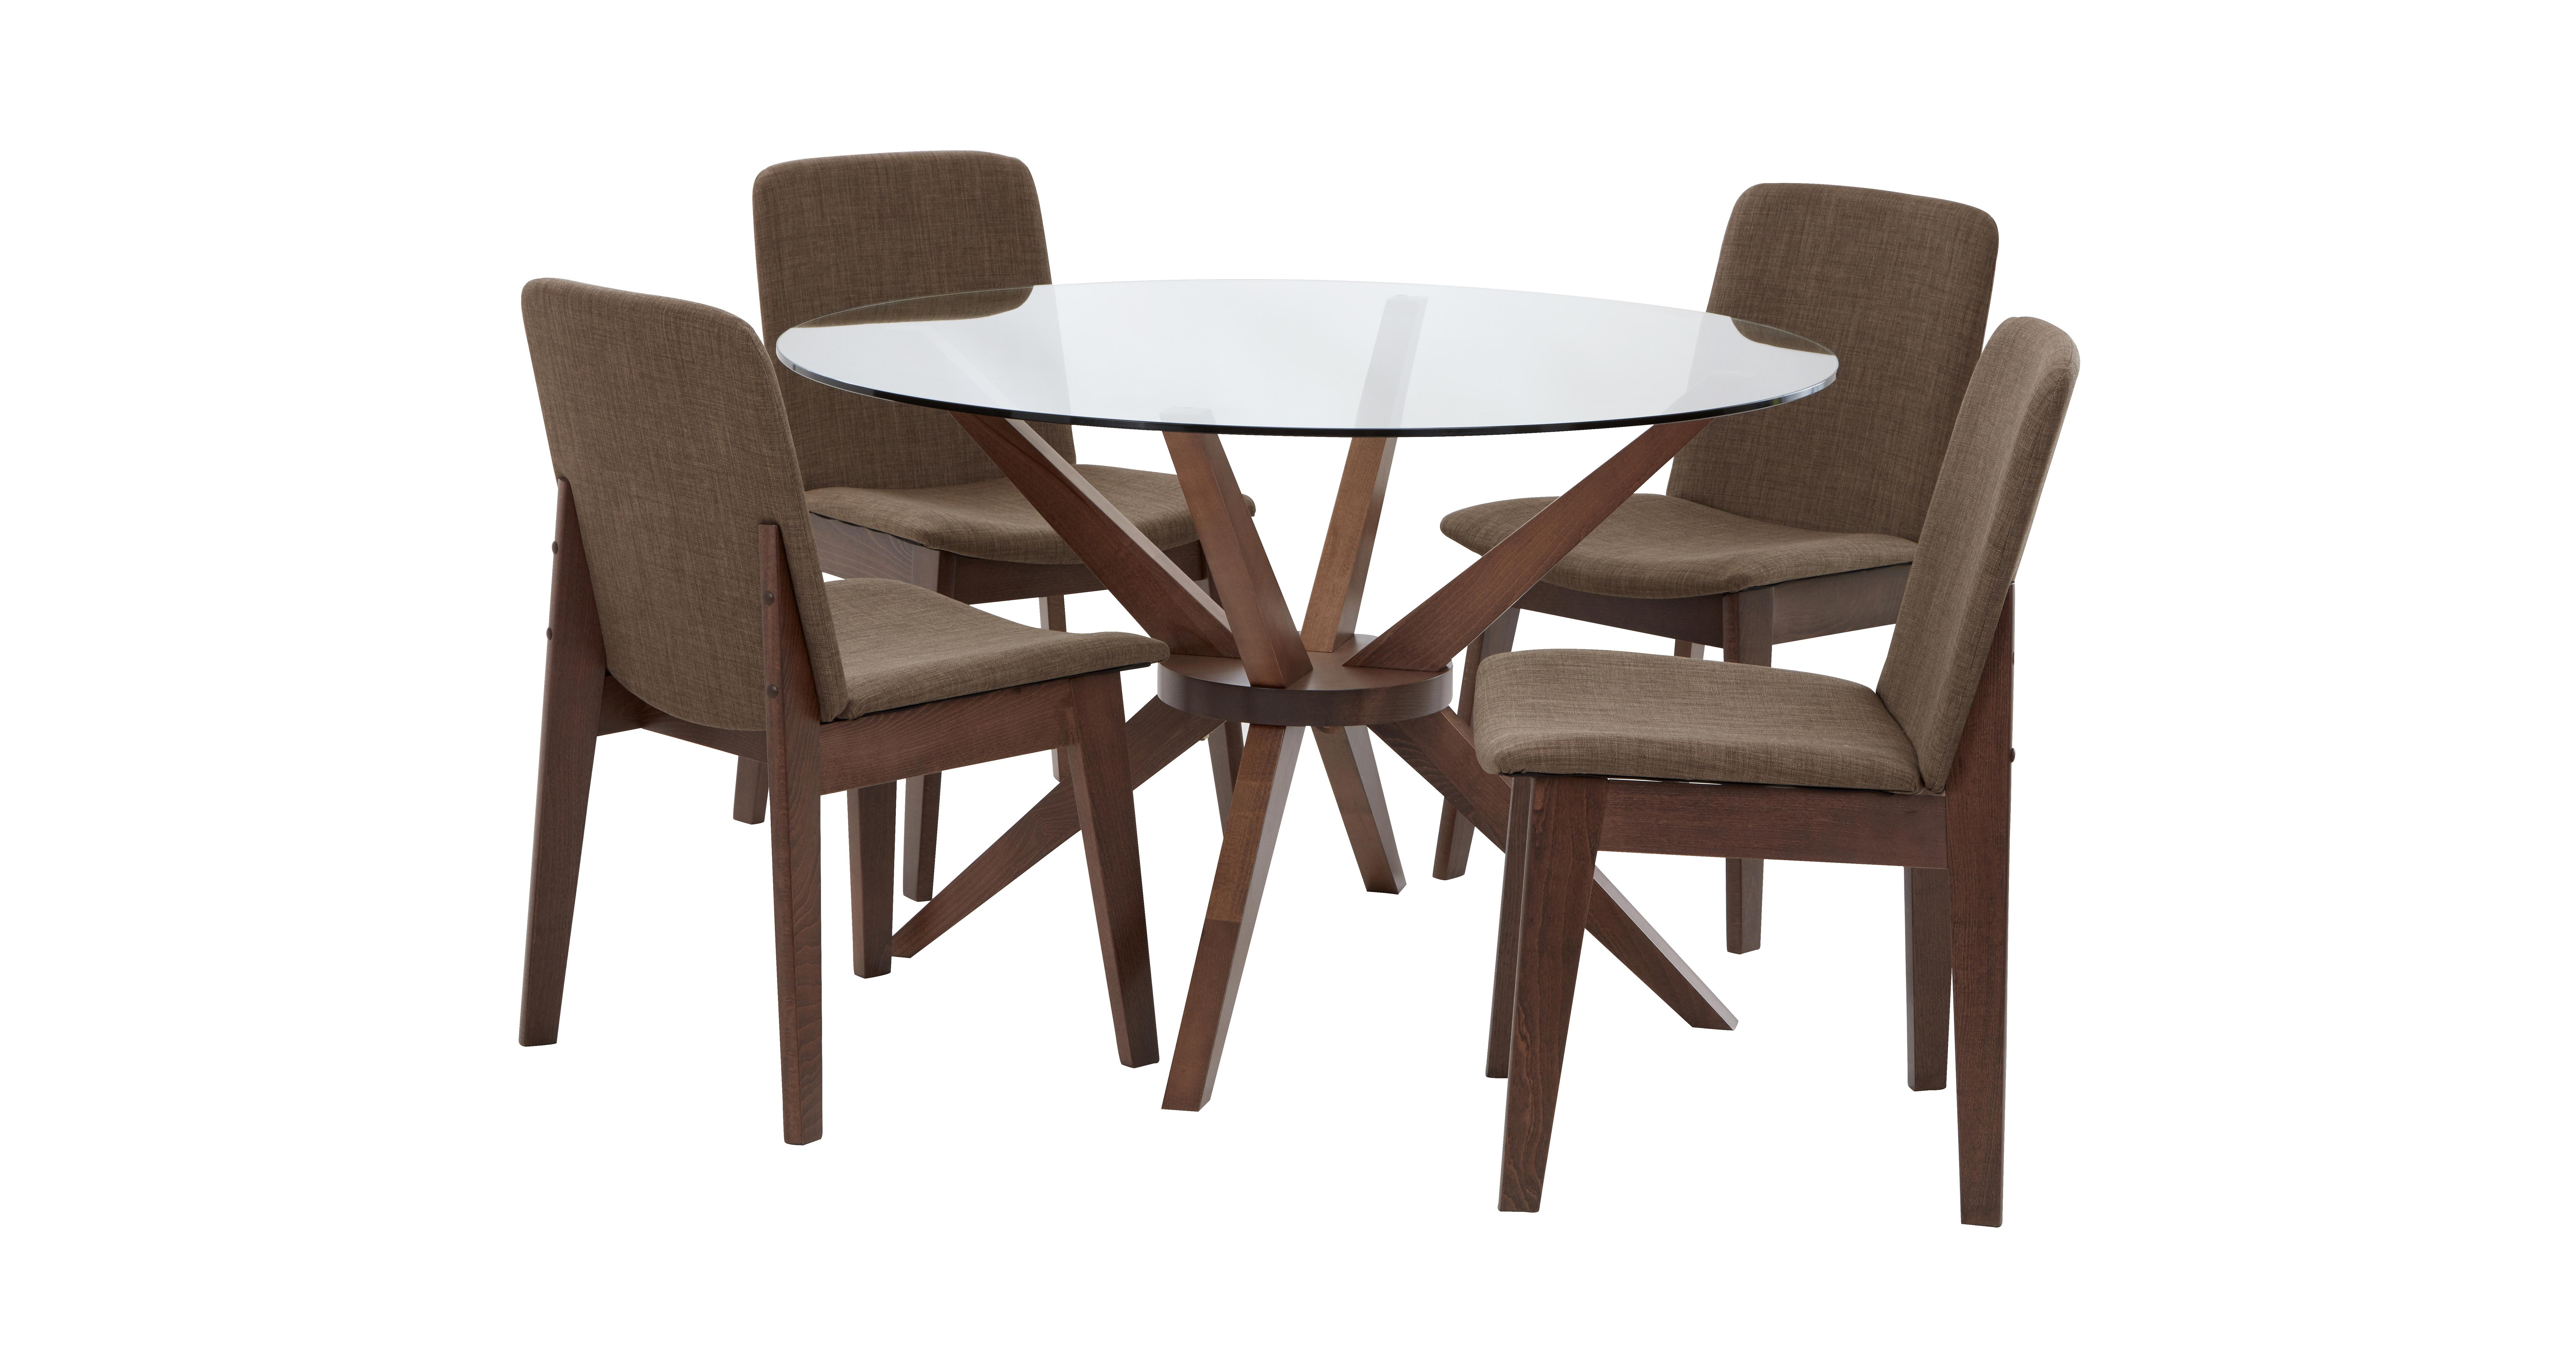 Kitsch Round Glass Table Set Of 4 Chairs Dfs